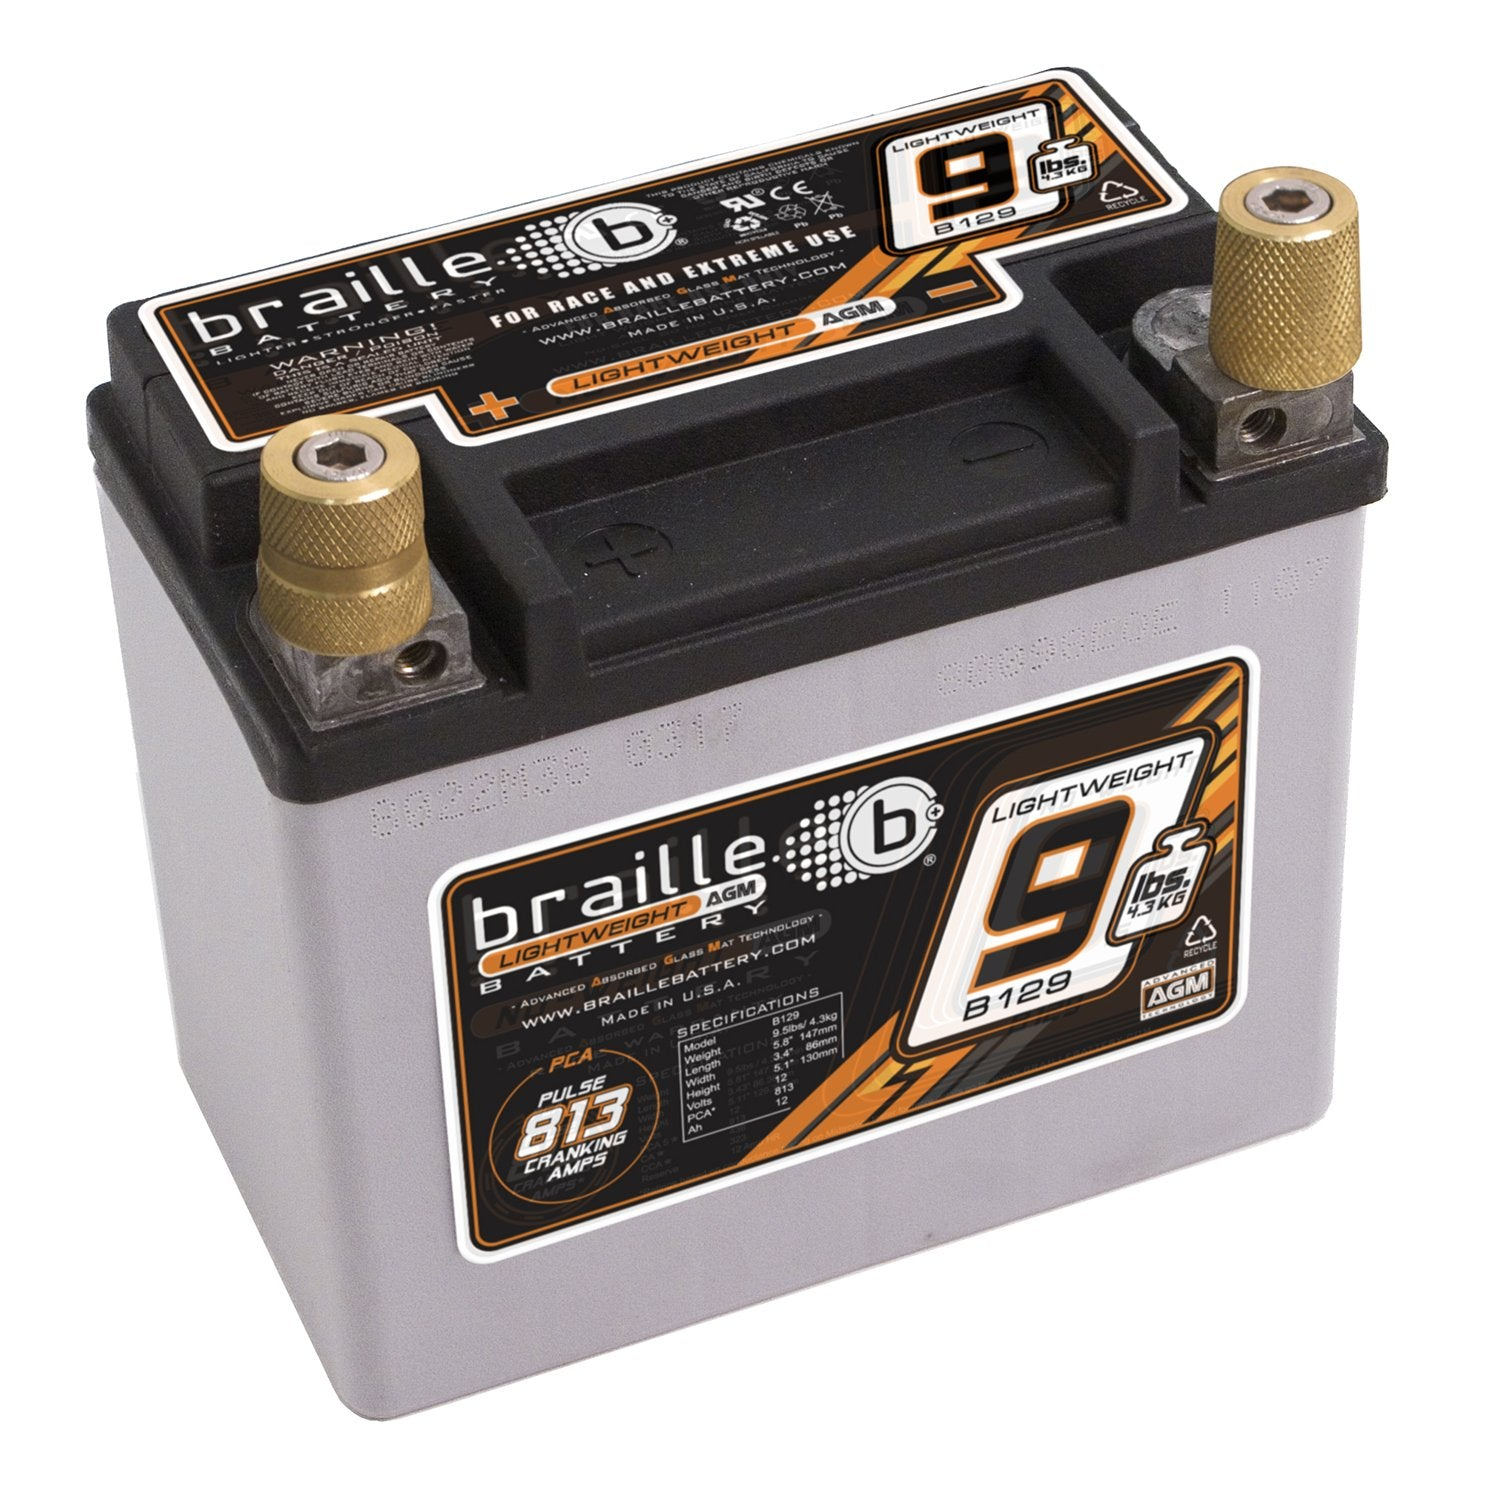 Braille Lightweight AGM Battery